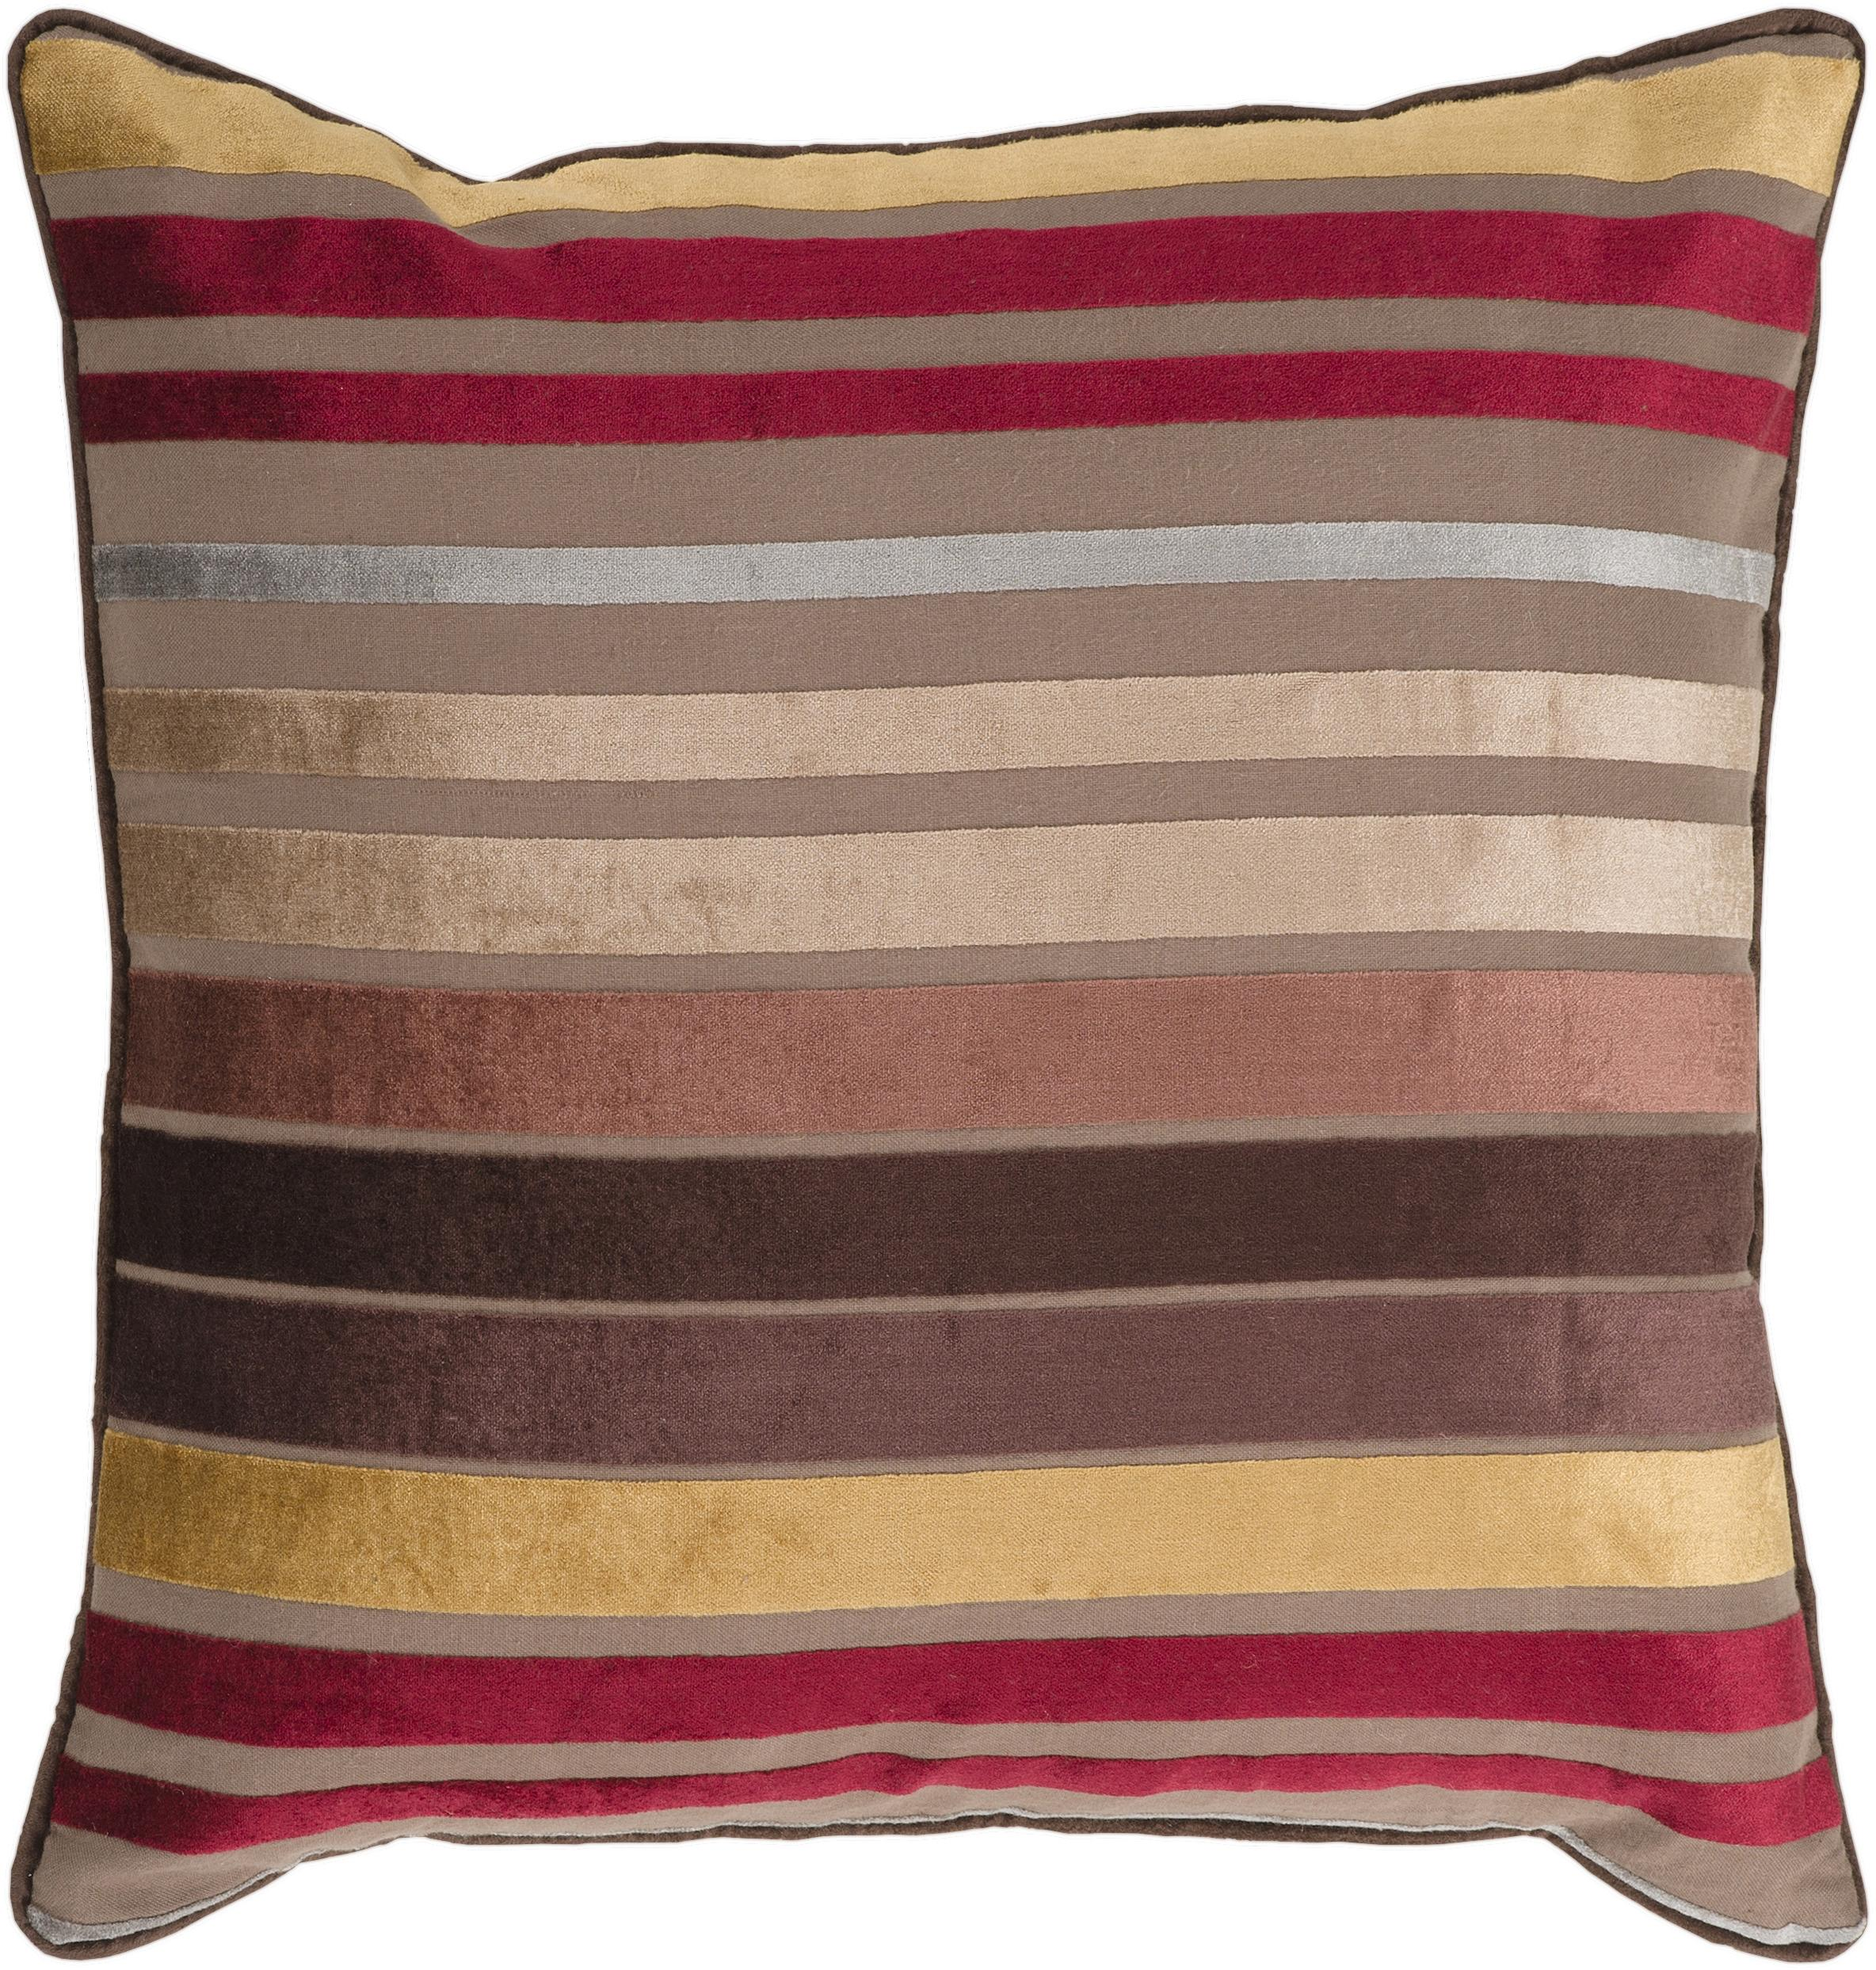 "Surya Pillows 22"" x 22"" Pillow - Item Number: JS023-2222P"